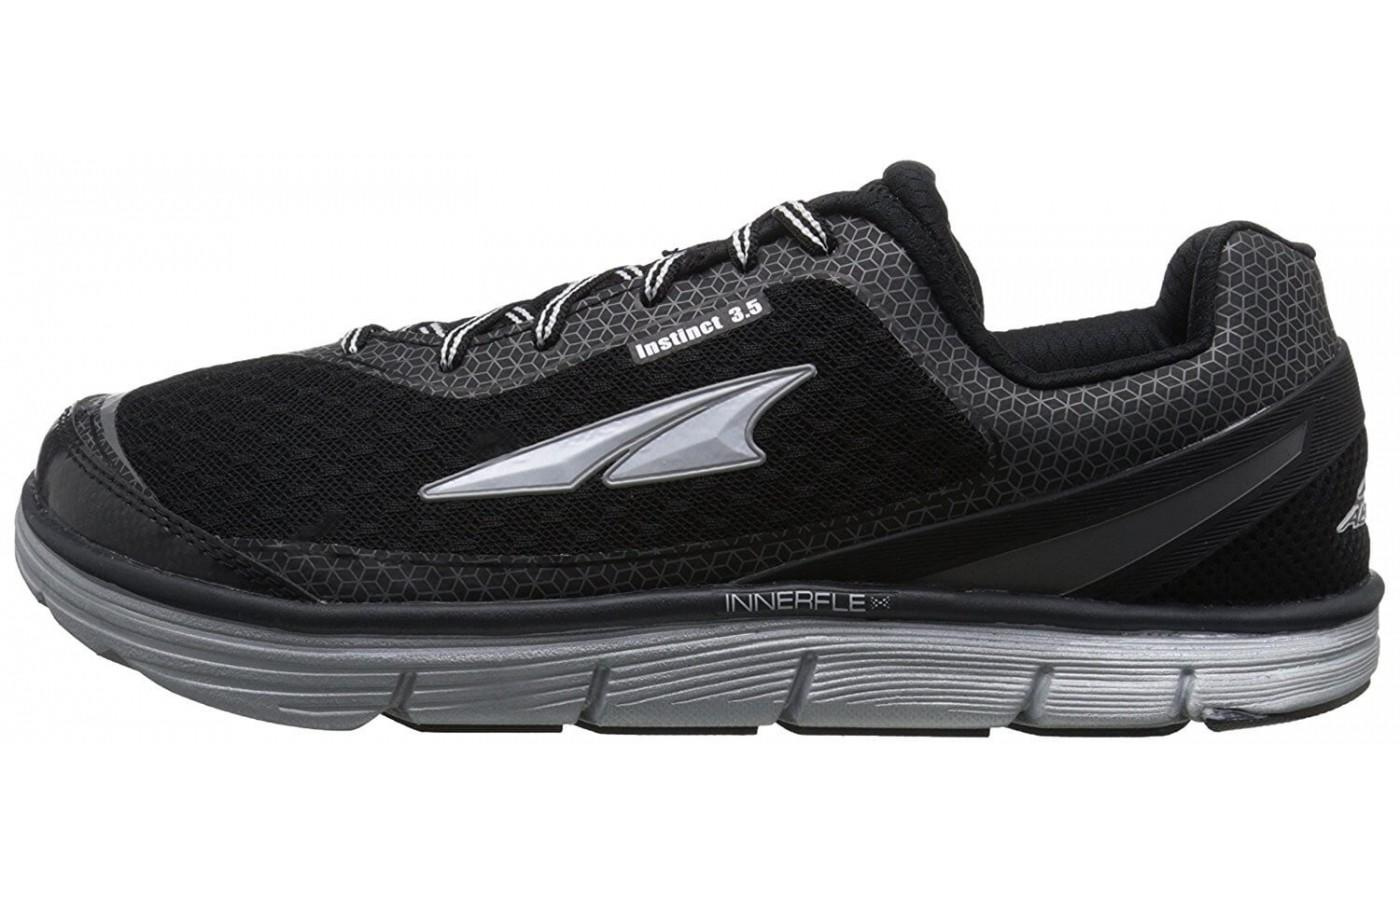 the Altra Instinct 3.5 works well for long distance runs